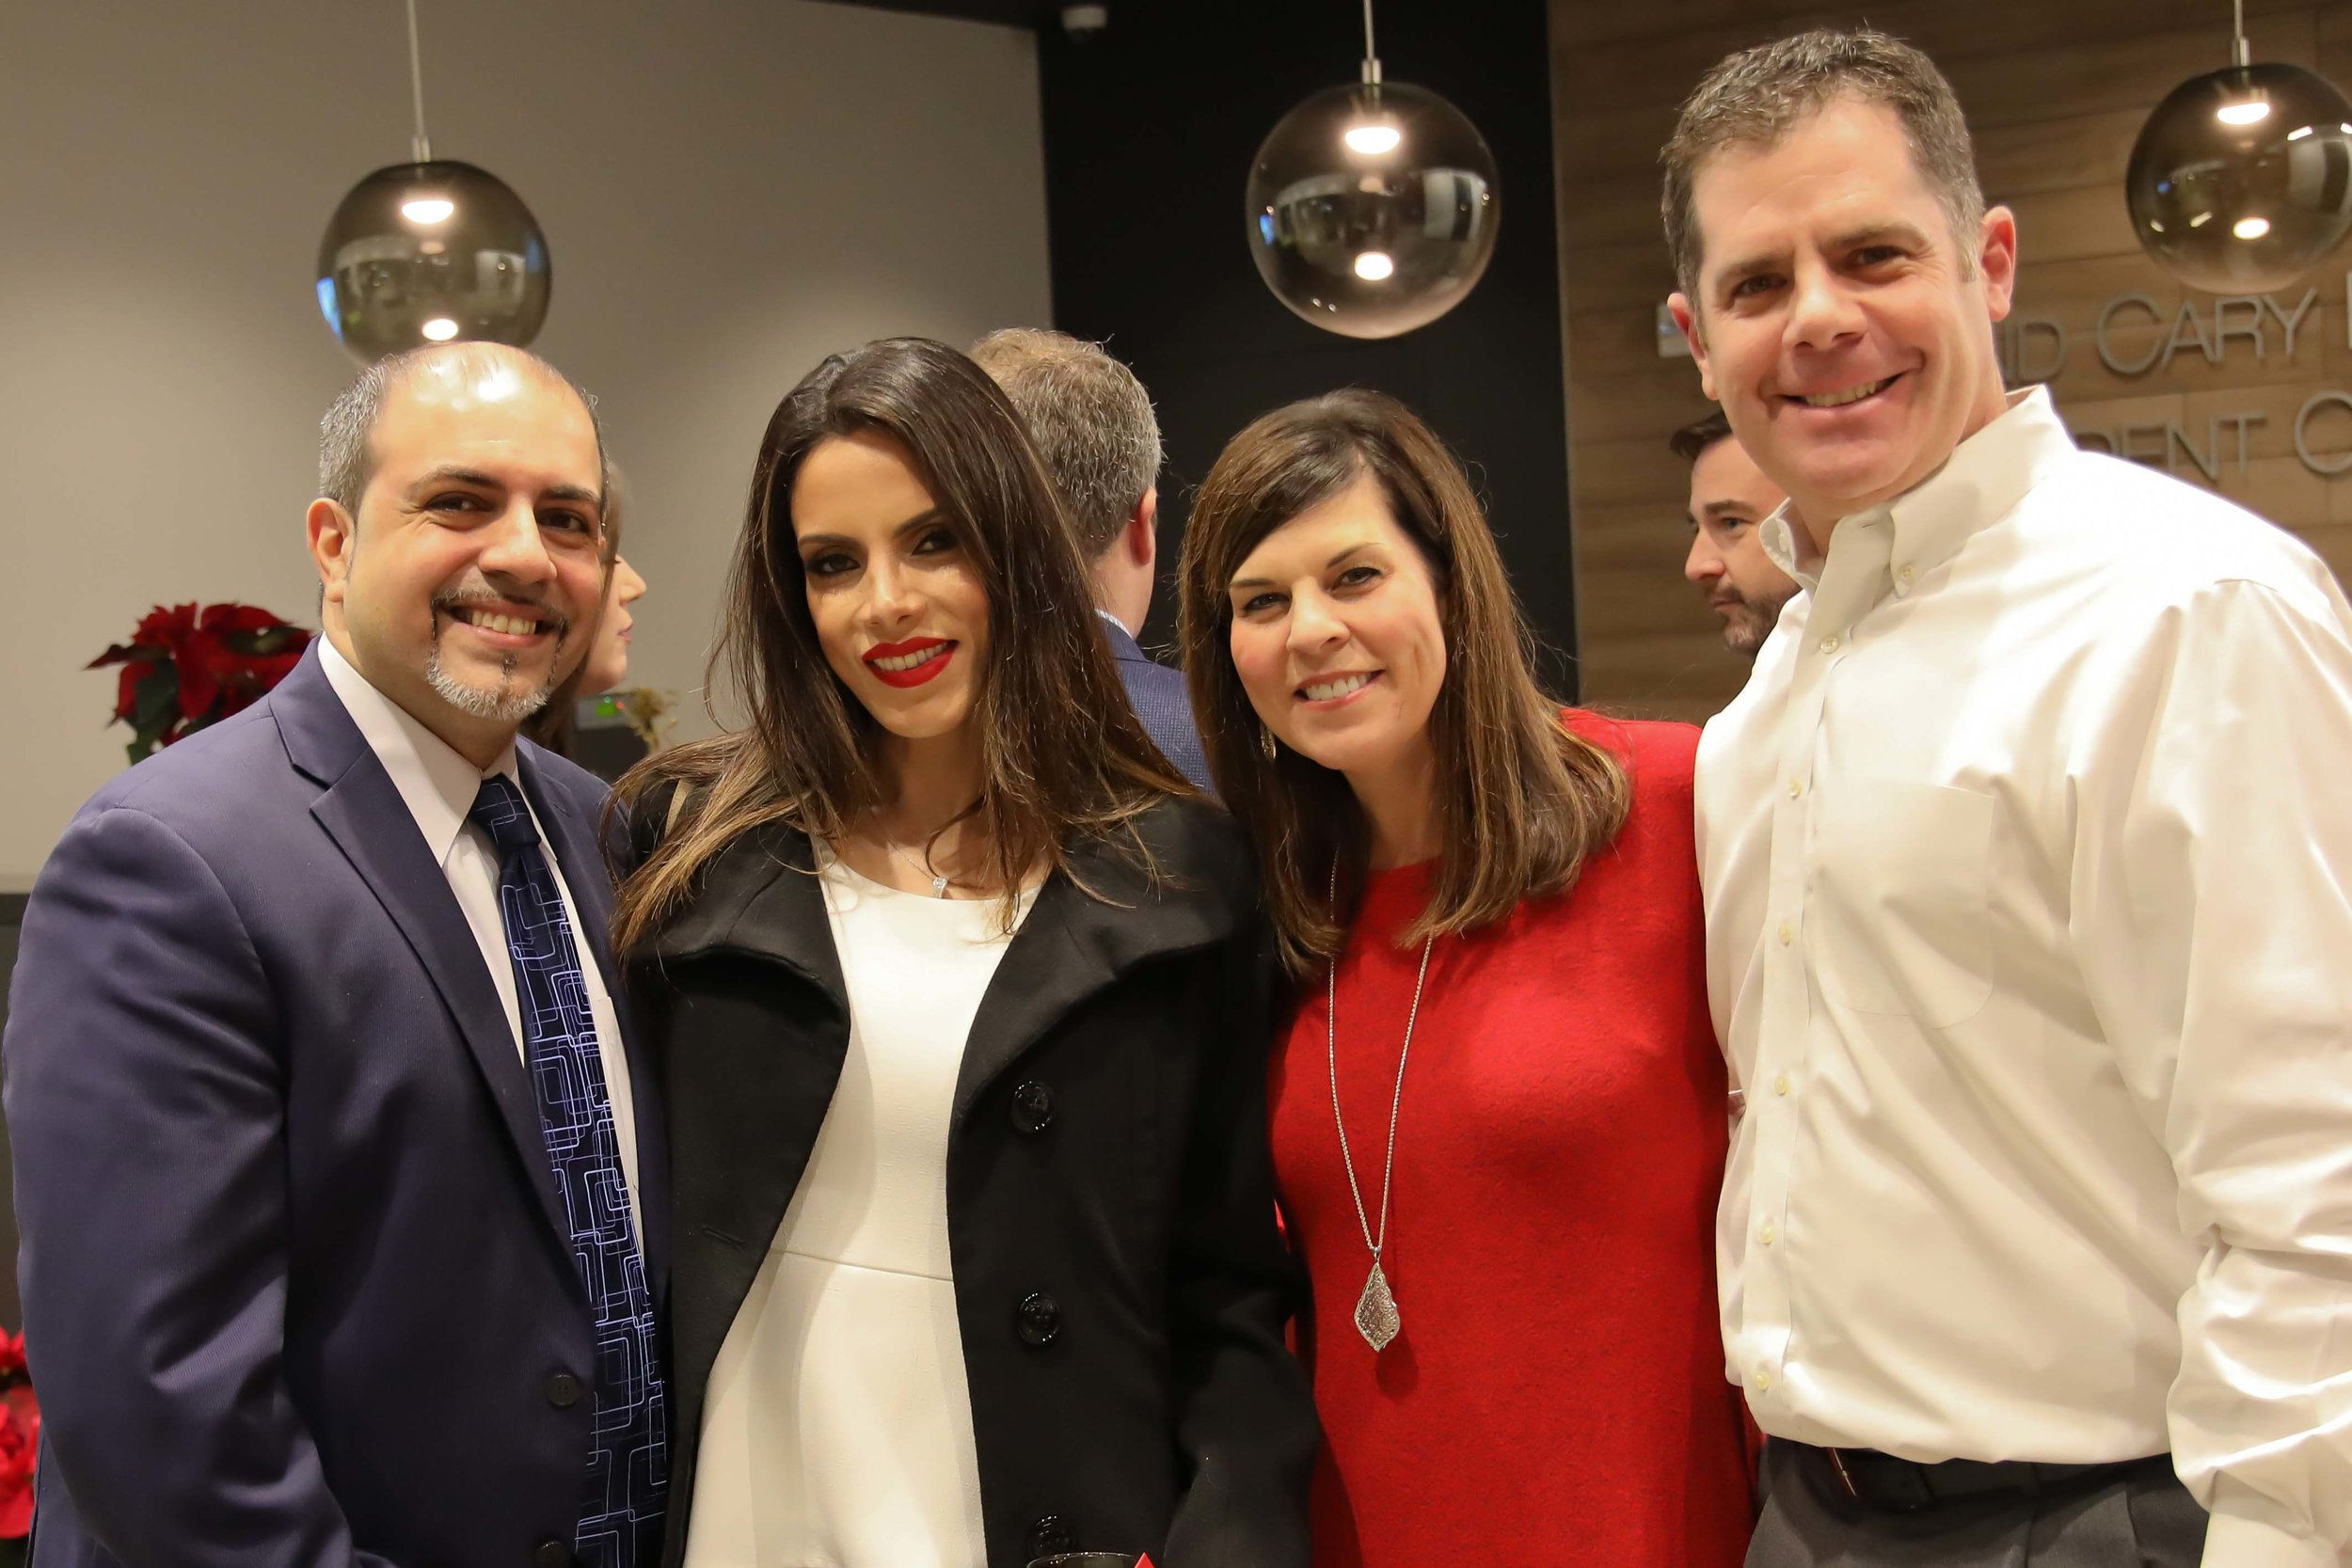 Dr. Hesham and Layla Hazin with Alison and Steve Mayo